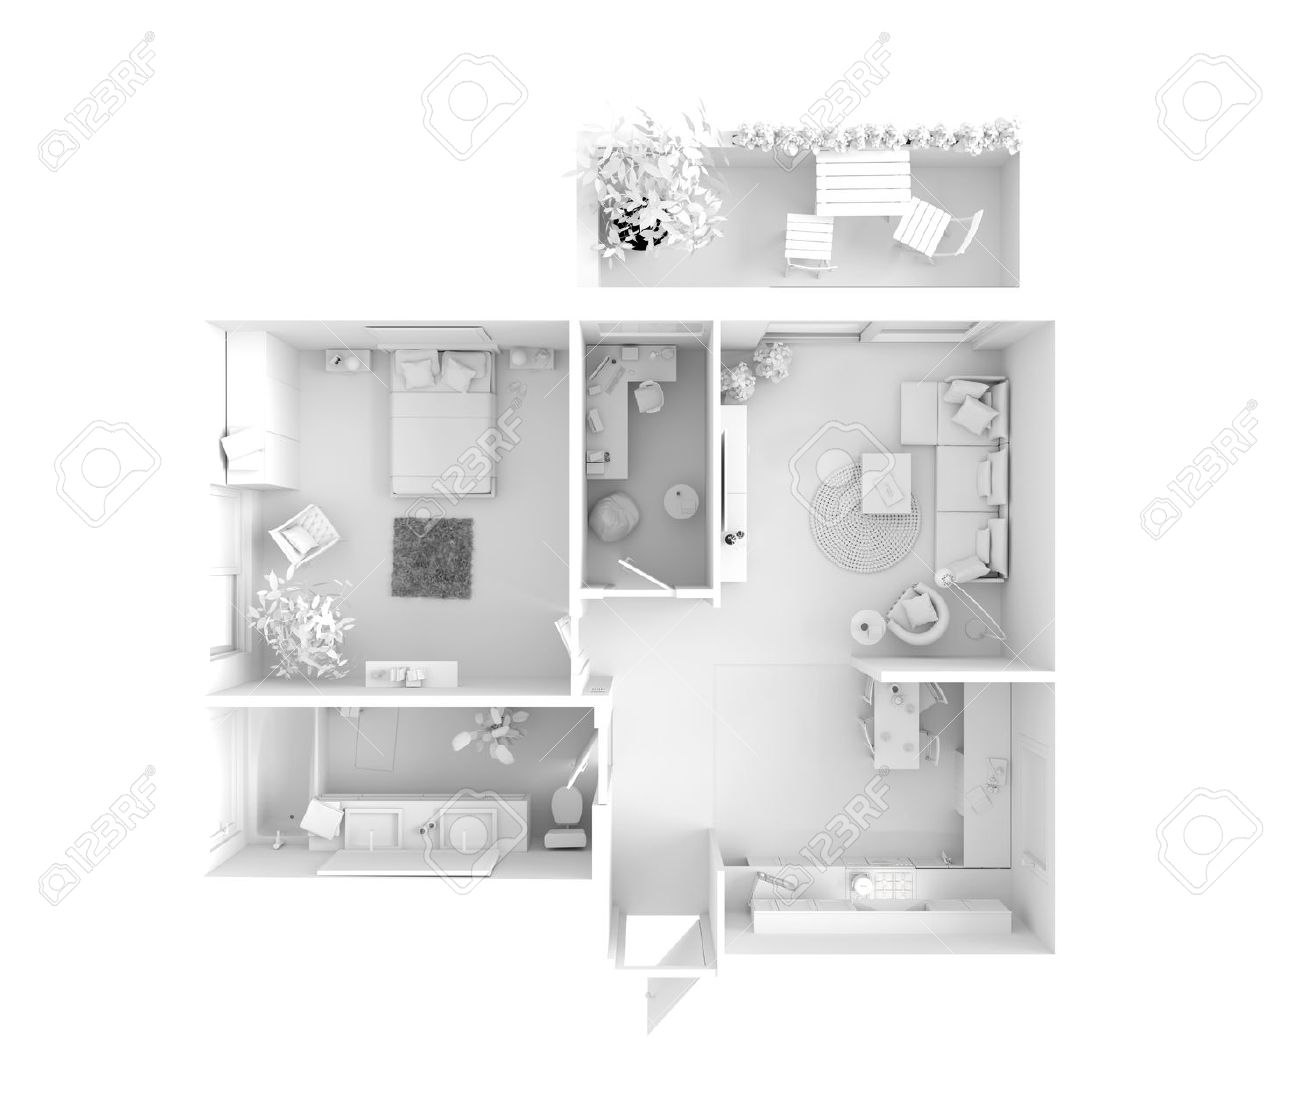 Plan View Of An Apartment Kitchen Dining Living Bedroom Hall